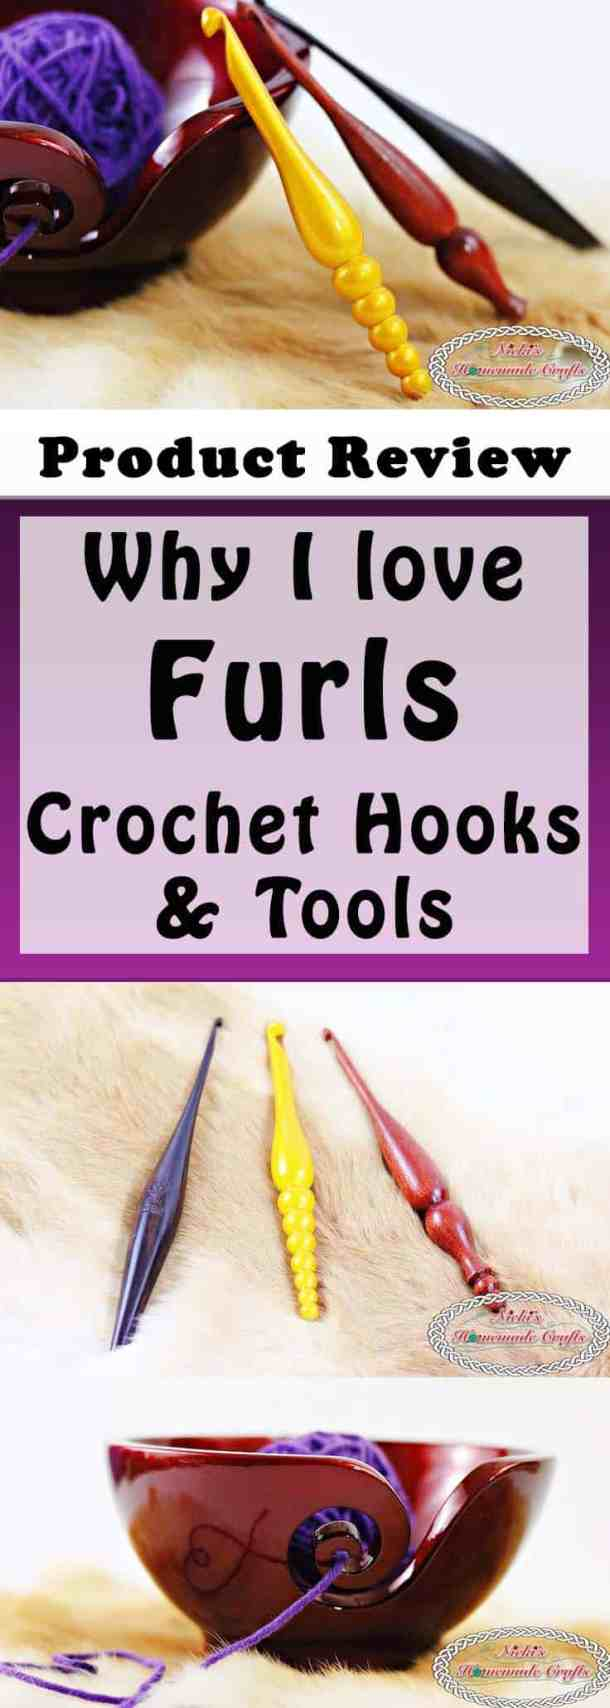 Product Review for Furls Crochet Hooks and Tools by Nicki's Homemade Crafts Showing of the Streamline, Alpha Series and the Candy Shop Hook as well as the Odyssey Yarn bowl